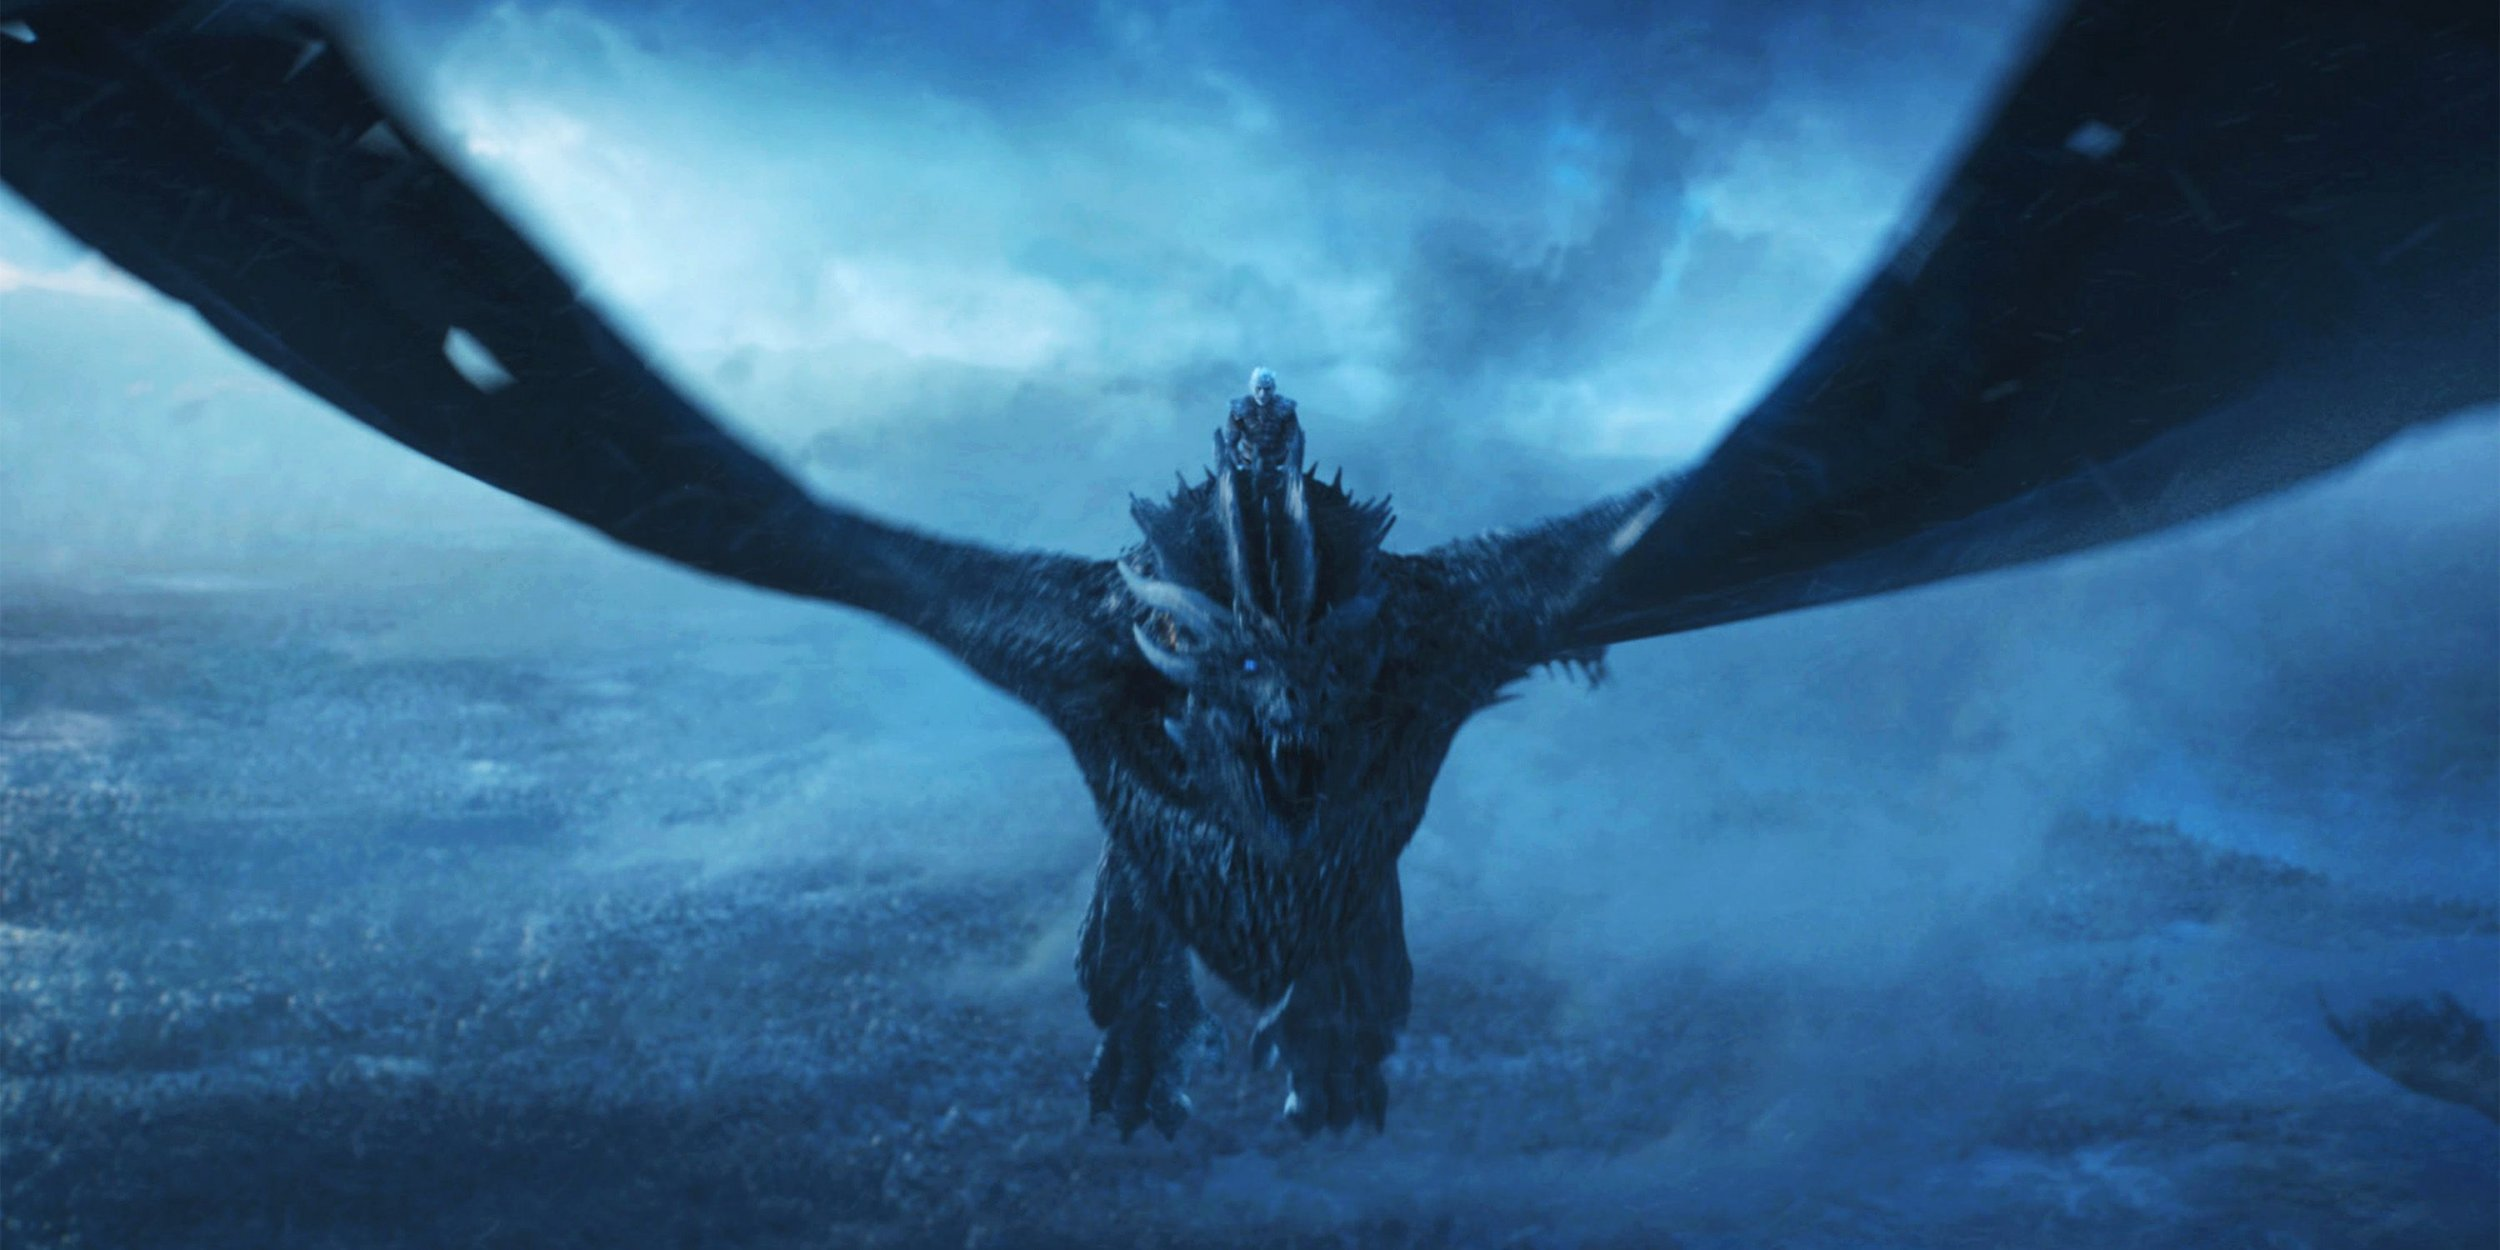 hbo-game-of-thrones-night-king-ice-dragon